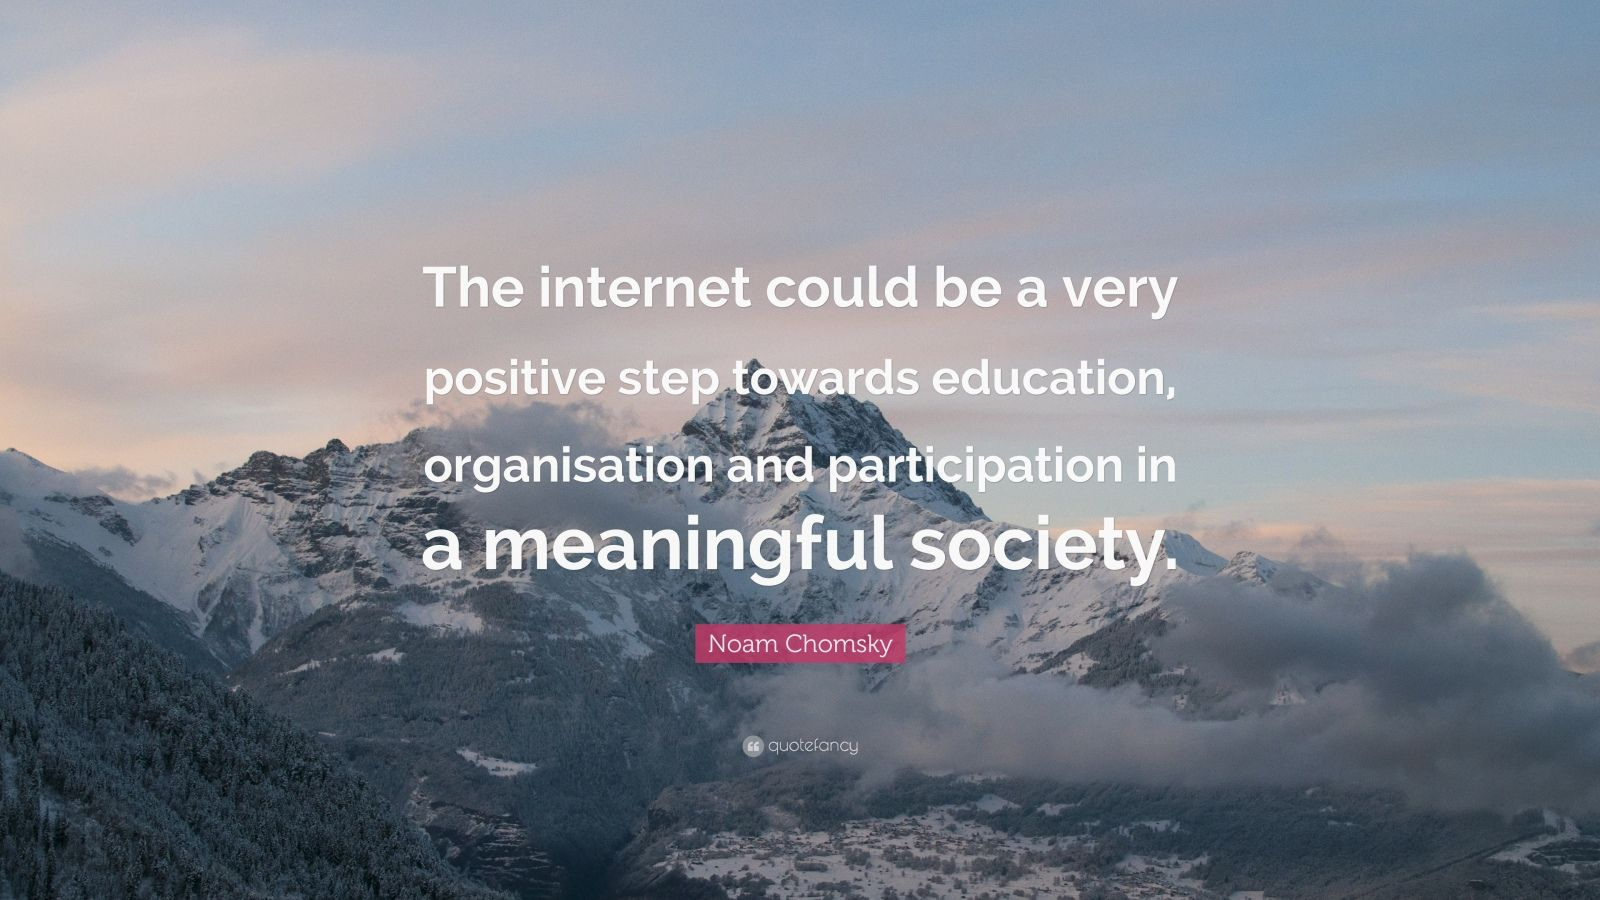 """Noam Chomsky Quote: """"The internet could be a very positive step towards education, organisation and participation in a meaningful society."""""""